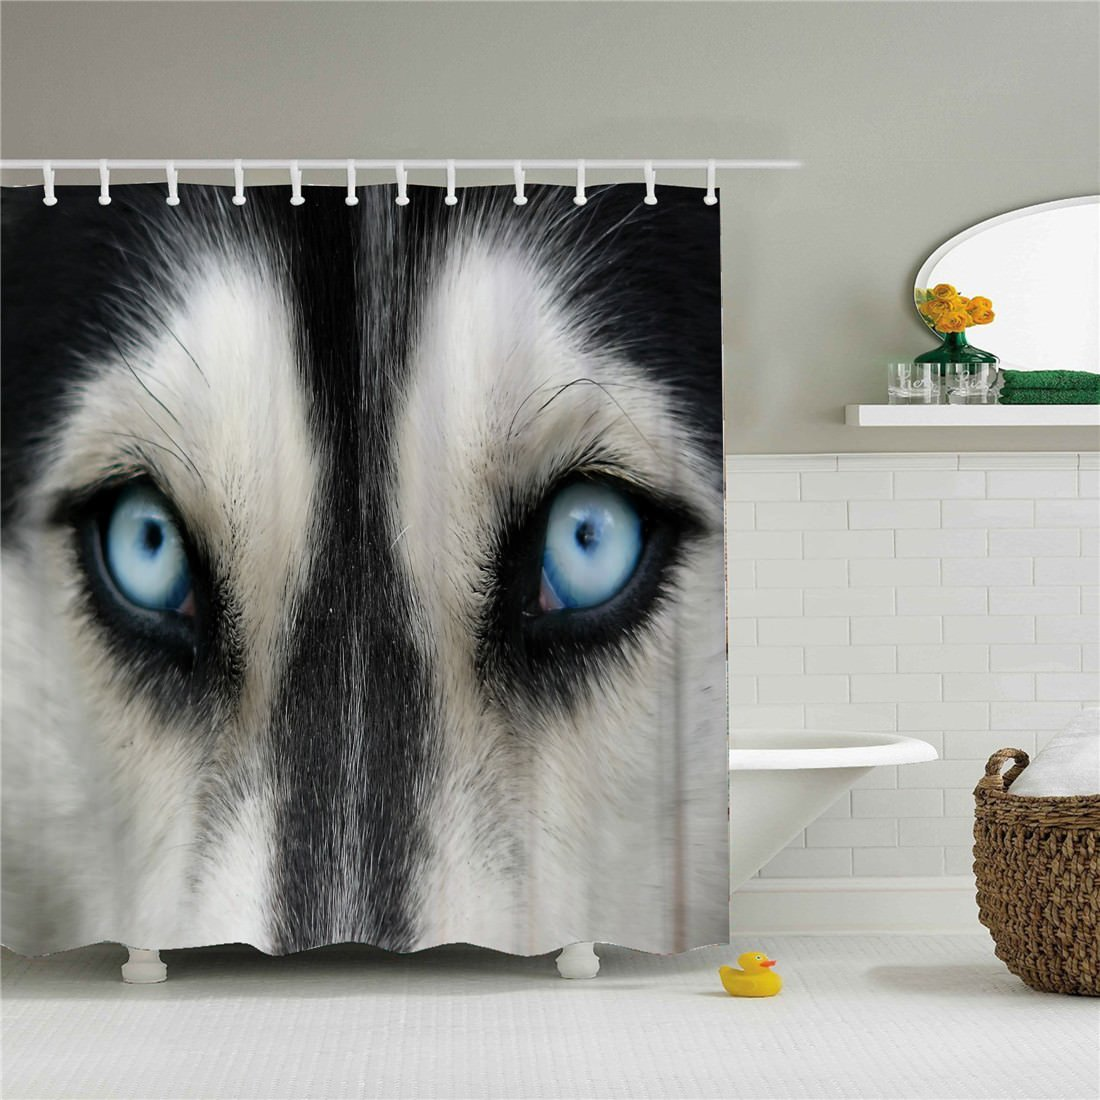 starlight-Bracele Bathroom shower curtain, Wolf with blue eyes, black, white,waterproof, mildew proof, machine washable, environment-friendly material, odorless 60x72 inch